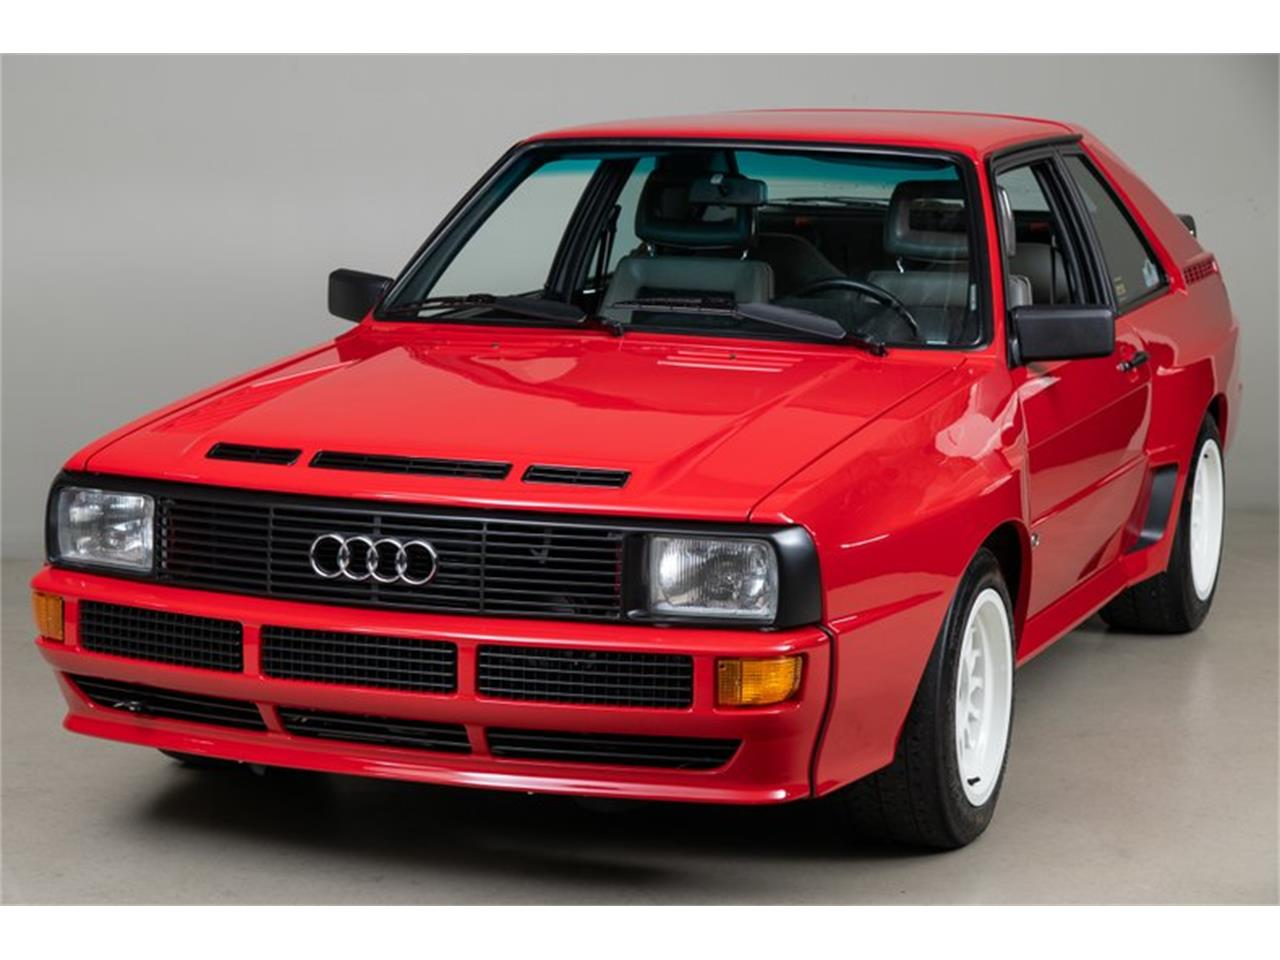 1986 Audi Quattro (CC-1209439) for sale in Scotts Valley, California